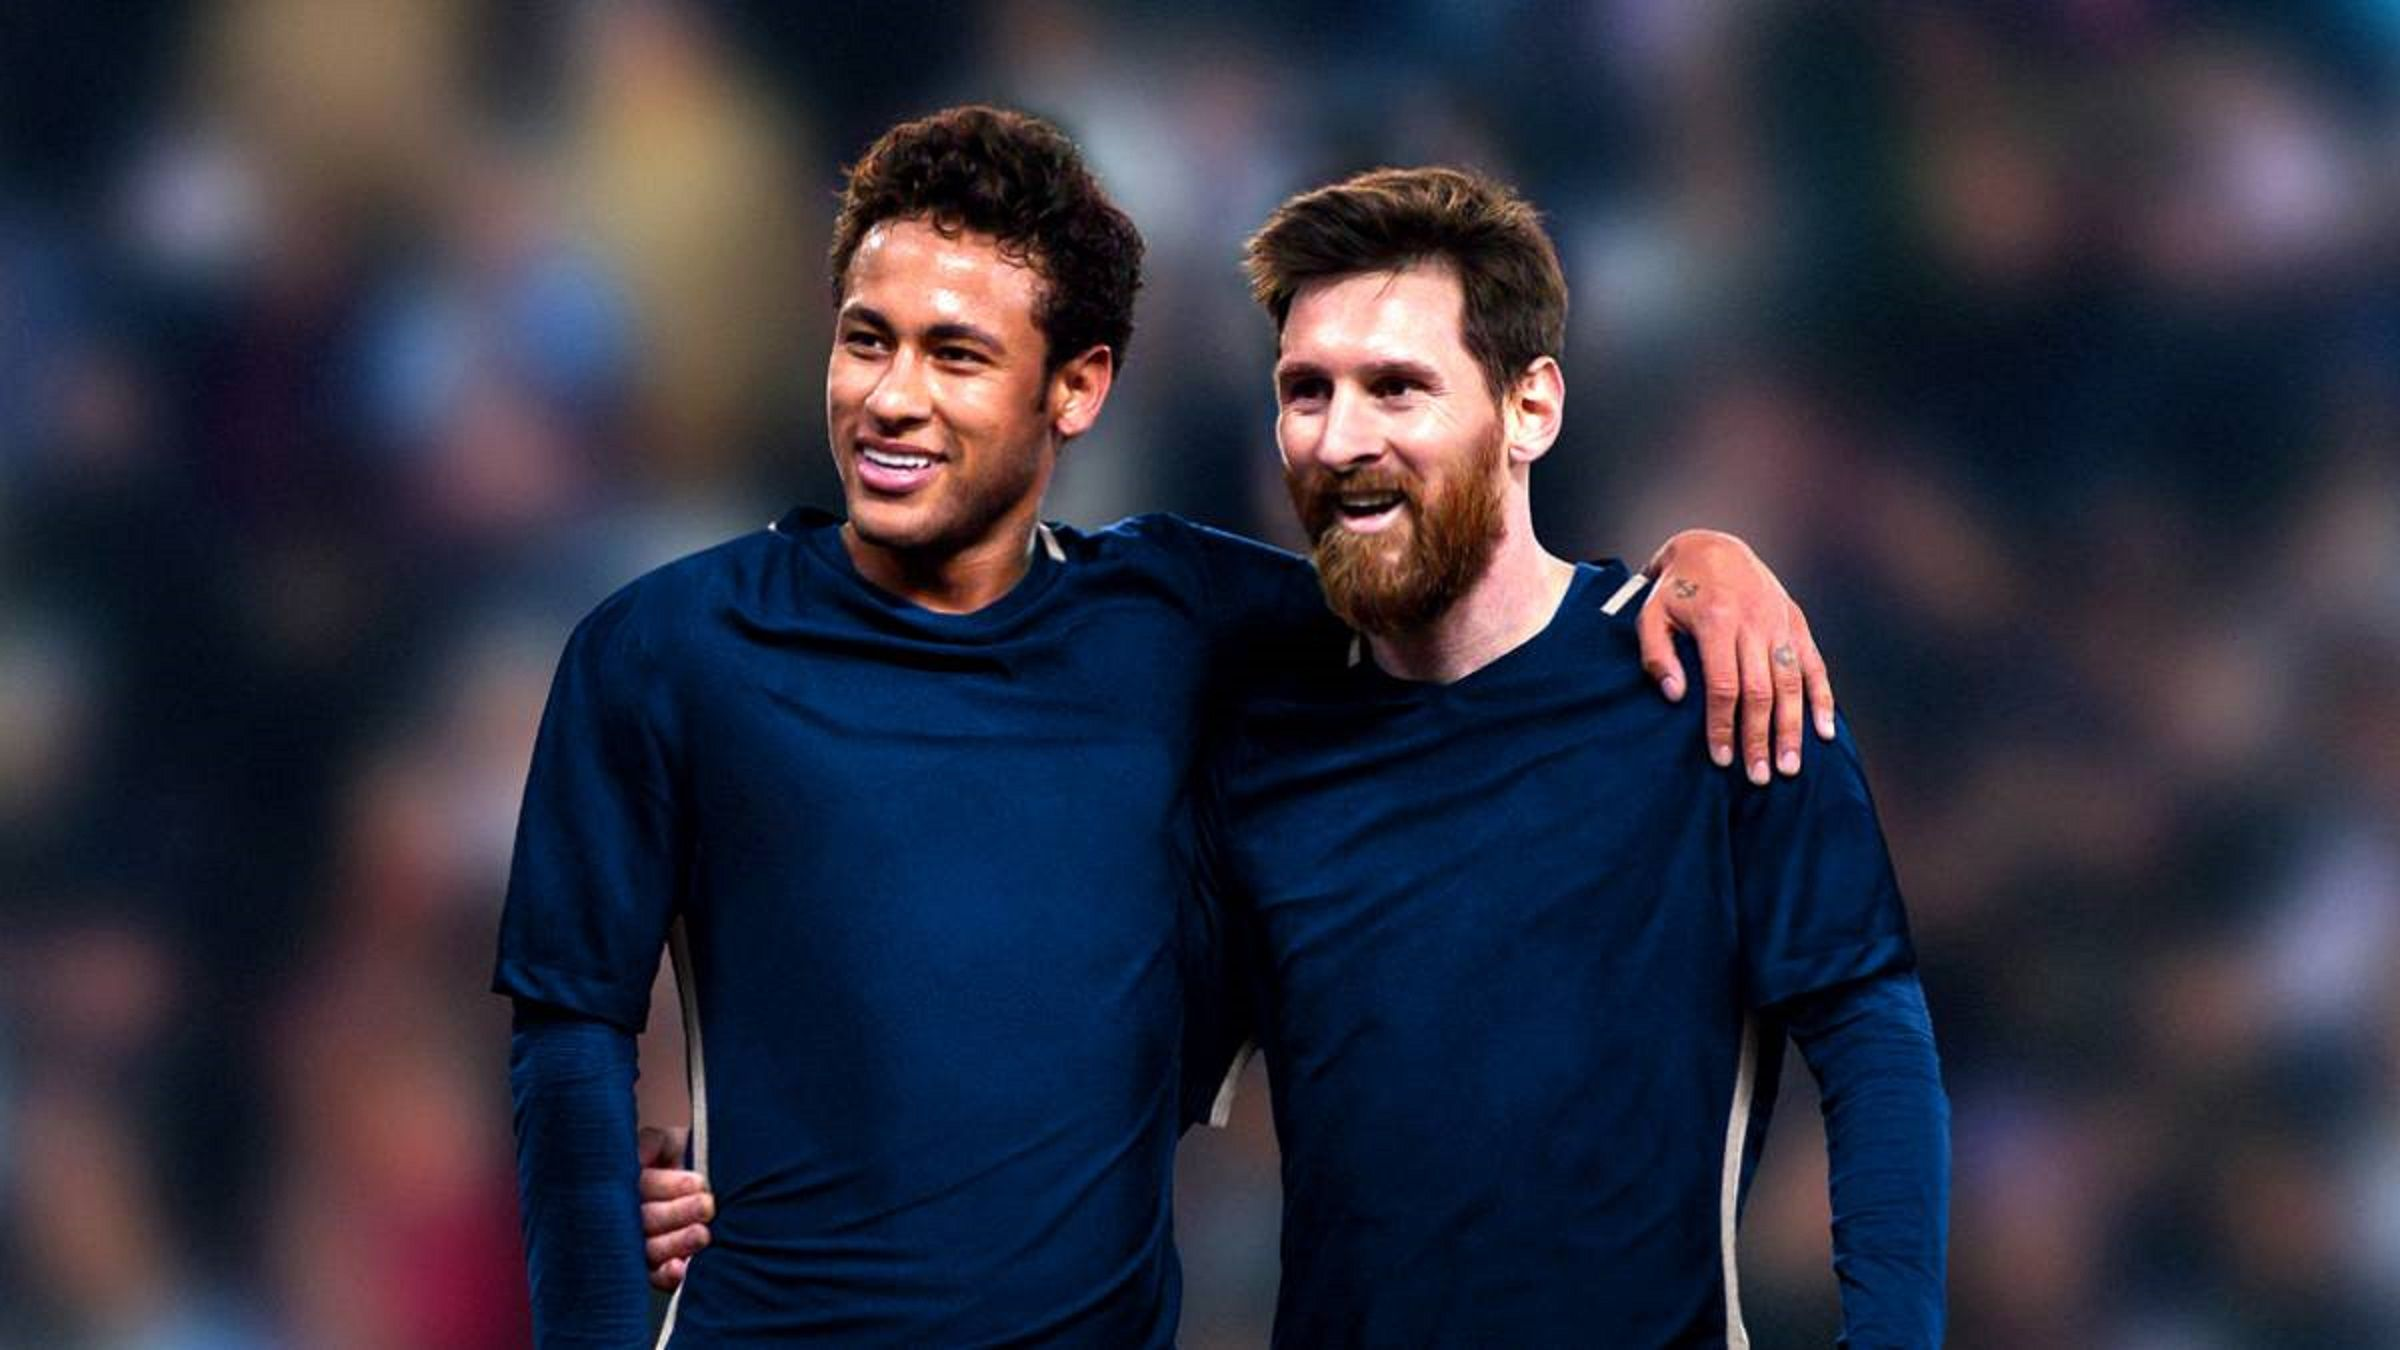 Messi: Sería terrible ver a Neymar en el Real Madrid